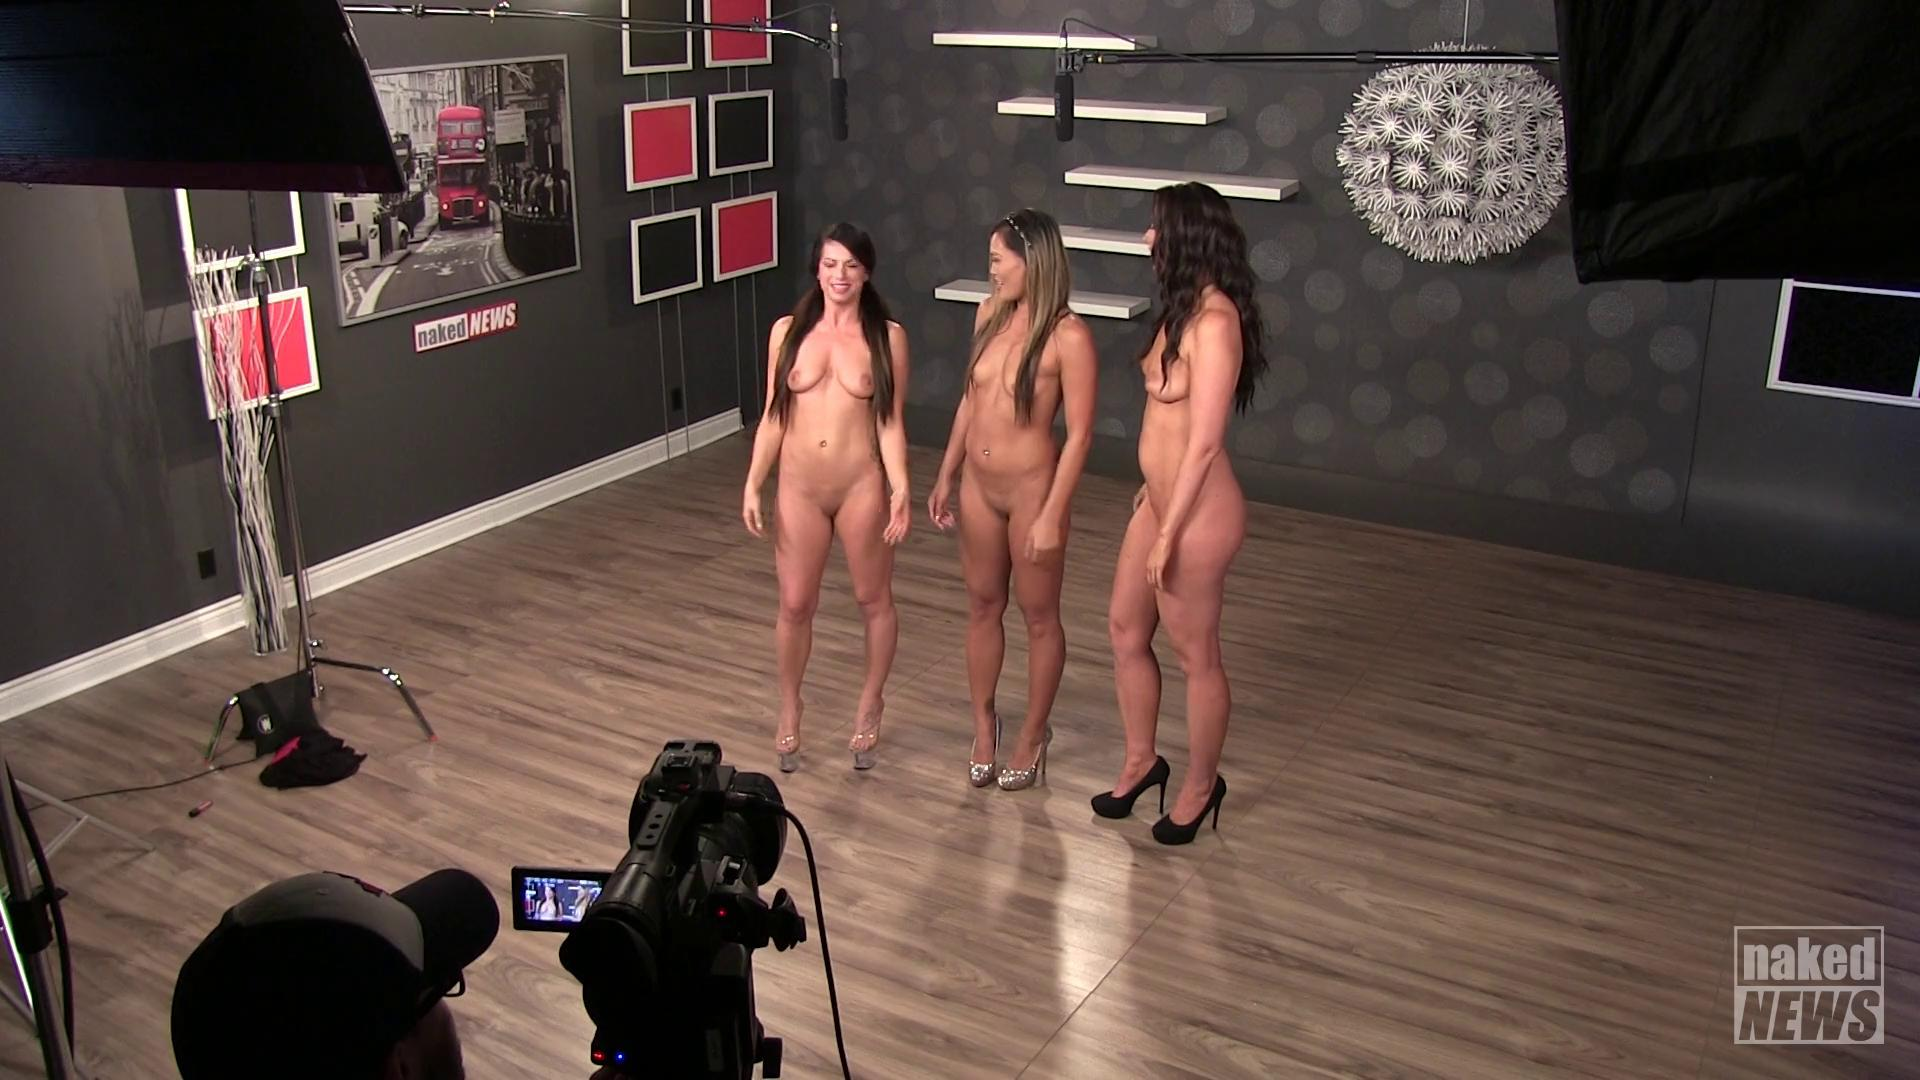 Four hot girls play a game, loser strips and more